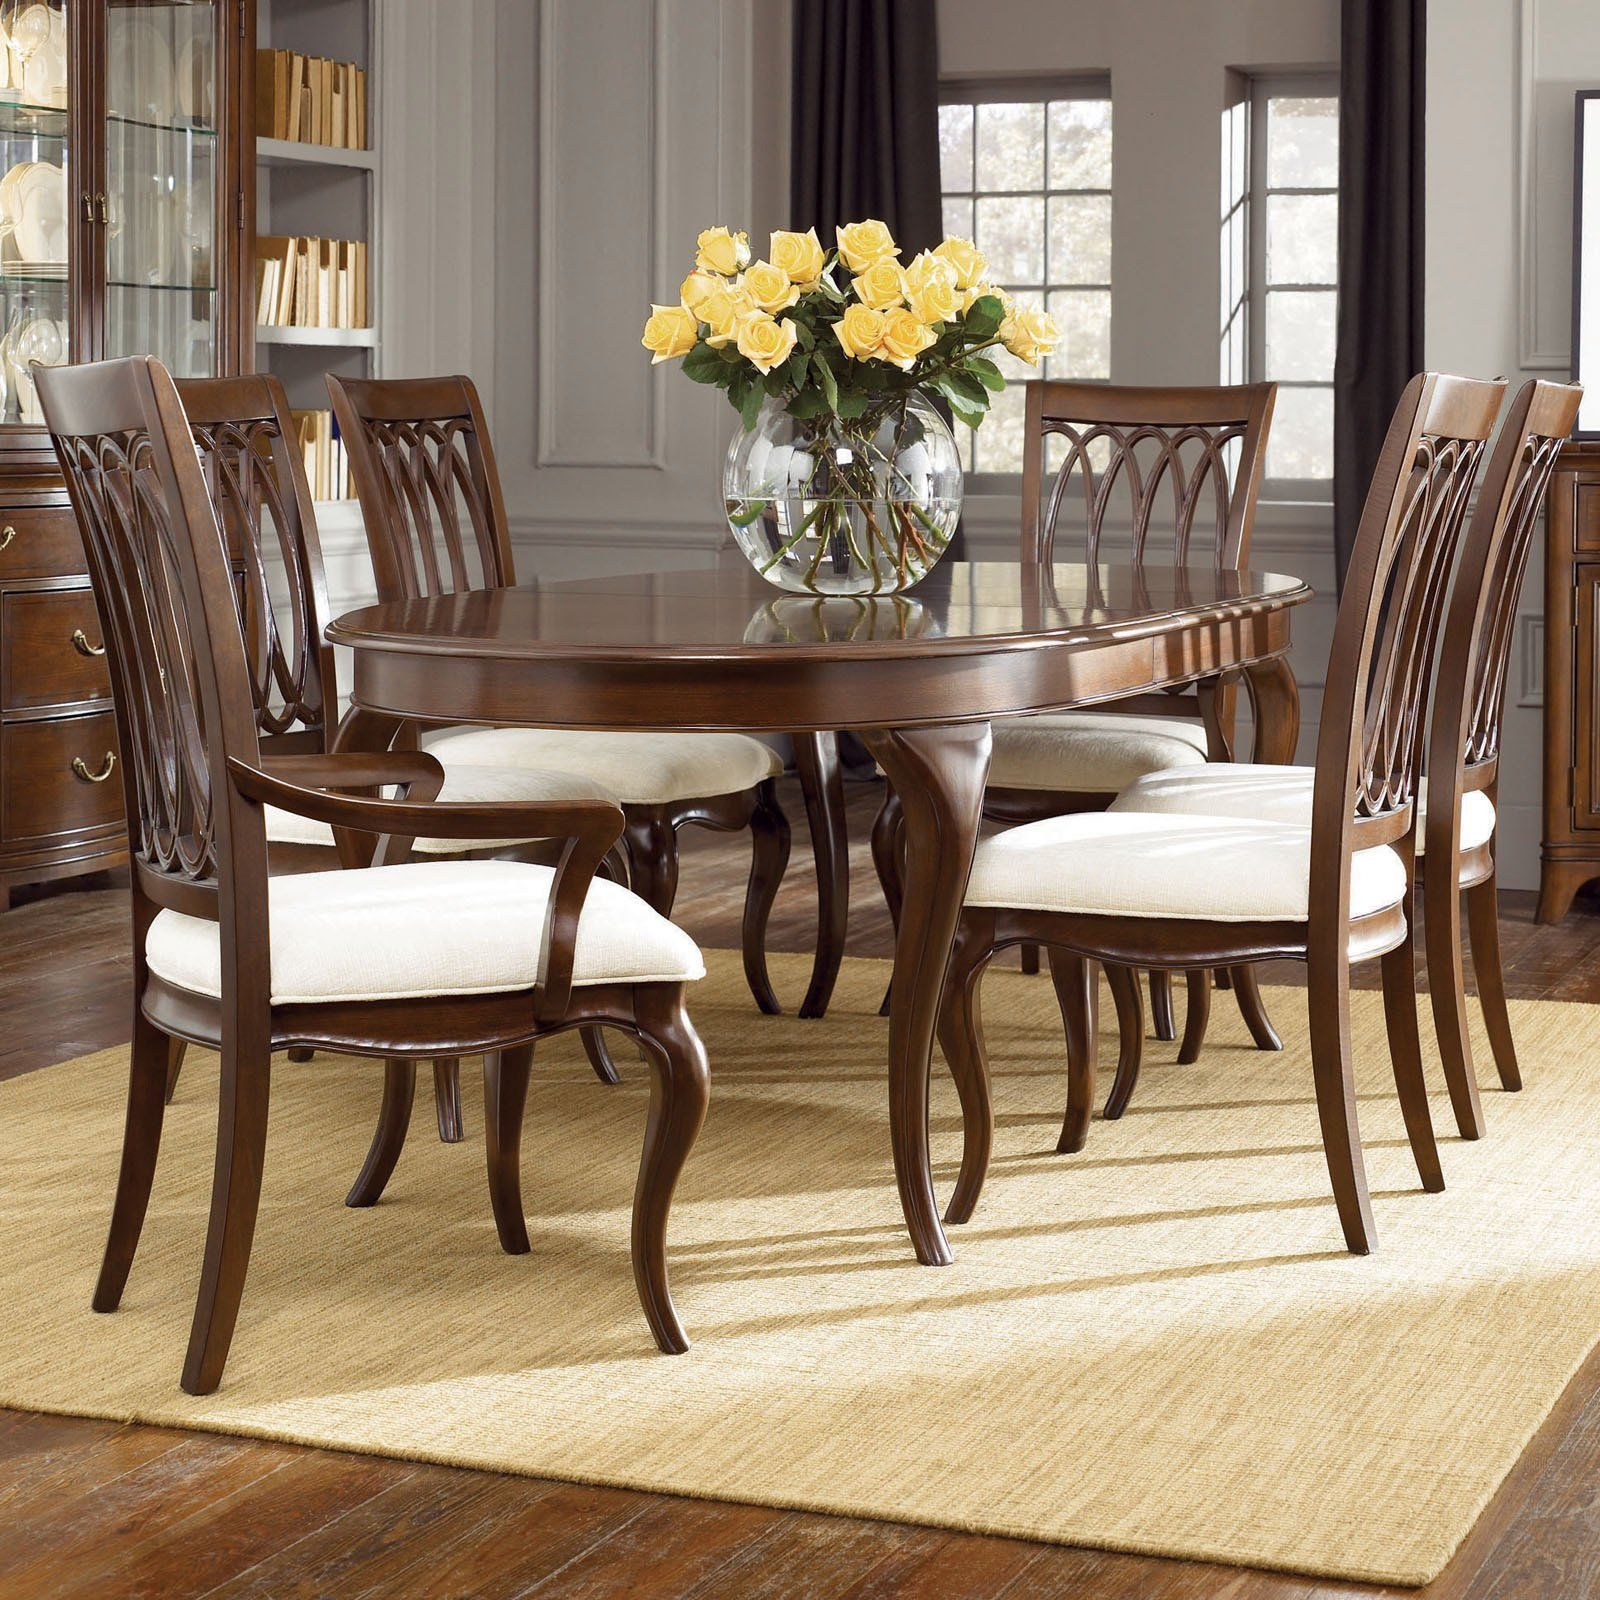 Have To Have Itamerican Drew Cherry Grove New Generation Oval Cool Traditional Dining Room Sets Cherry Design Decoration